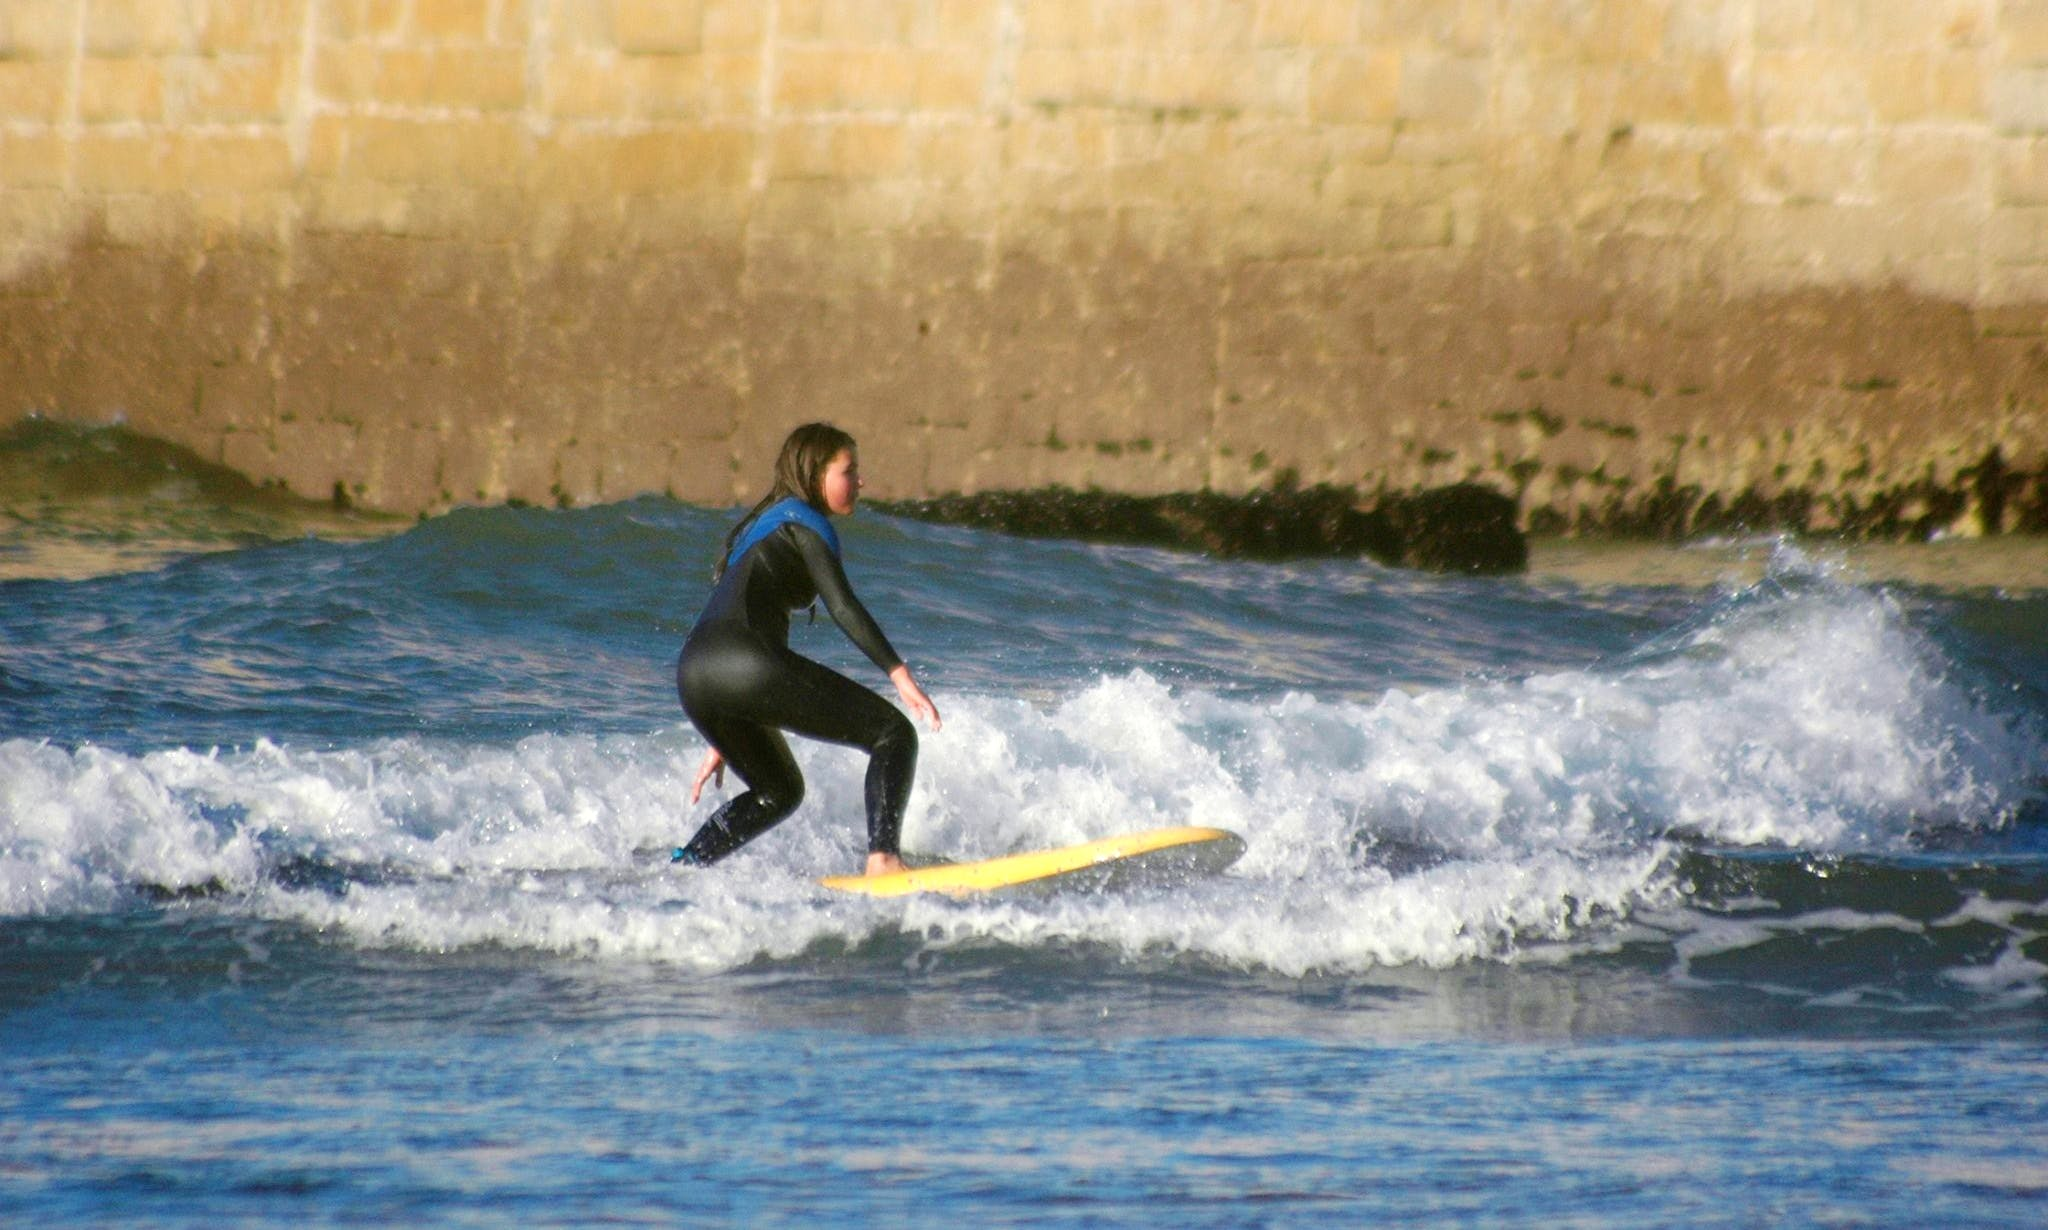 Enjoy Surf Lessons and Trips in Matosinhos, Portugal